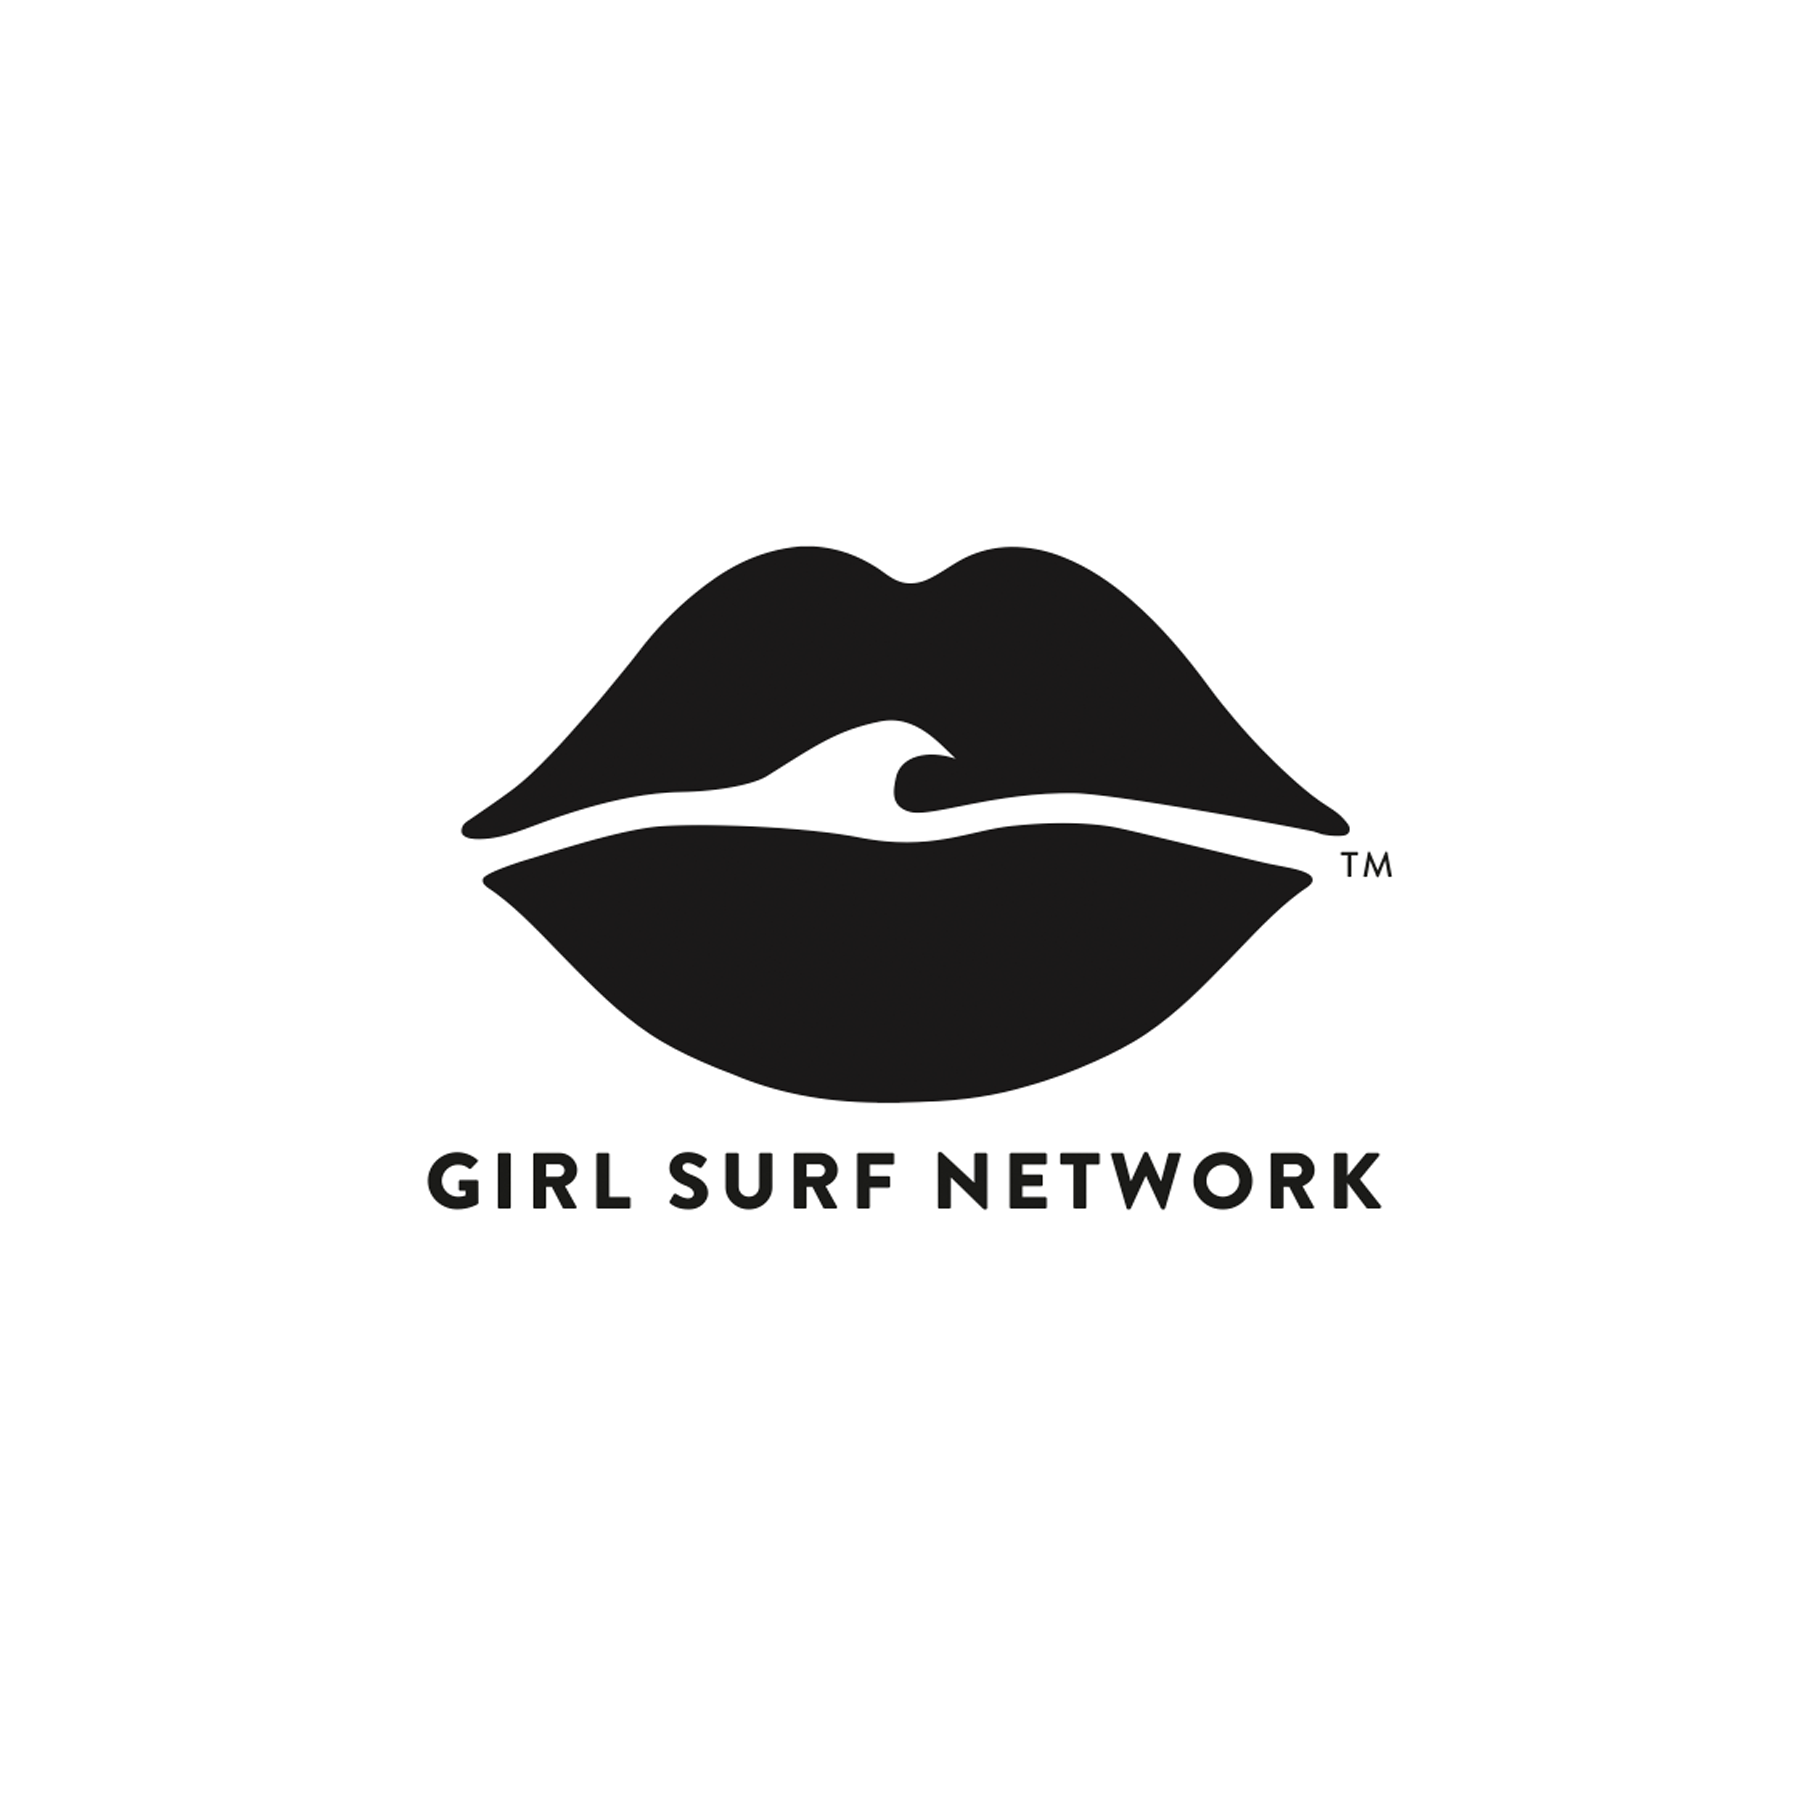 GIRL SURF NETWORK